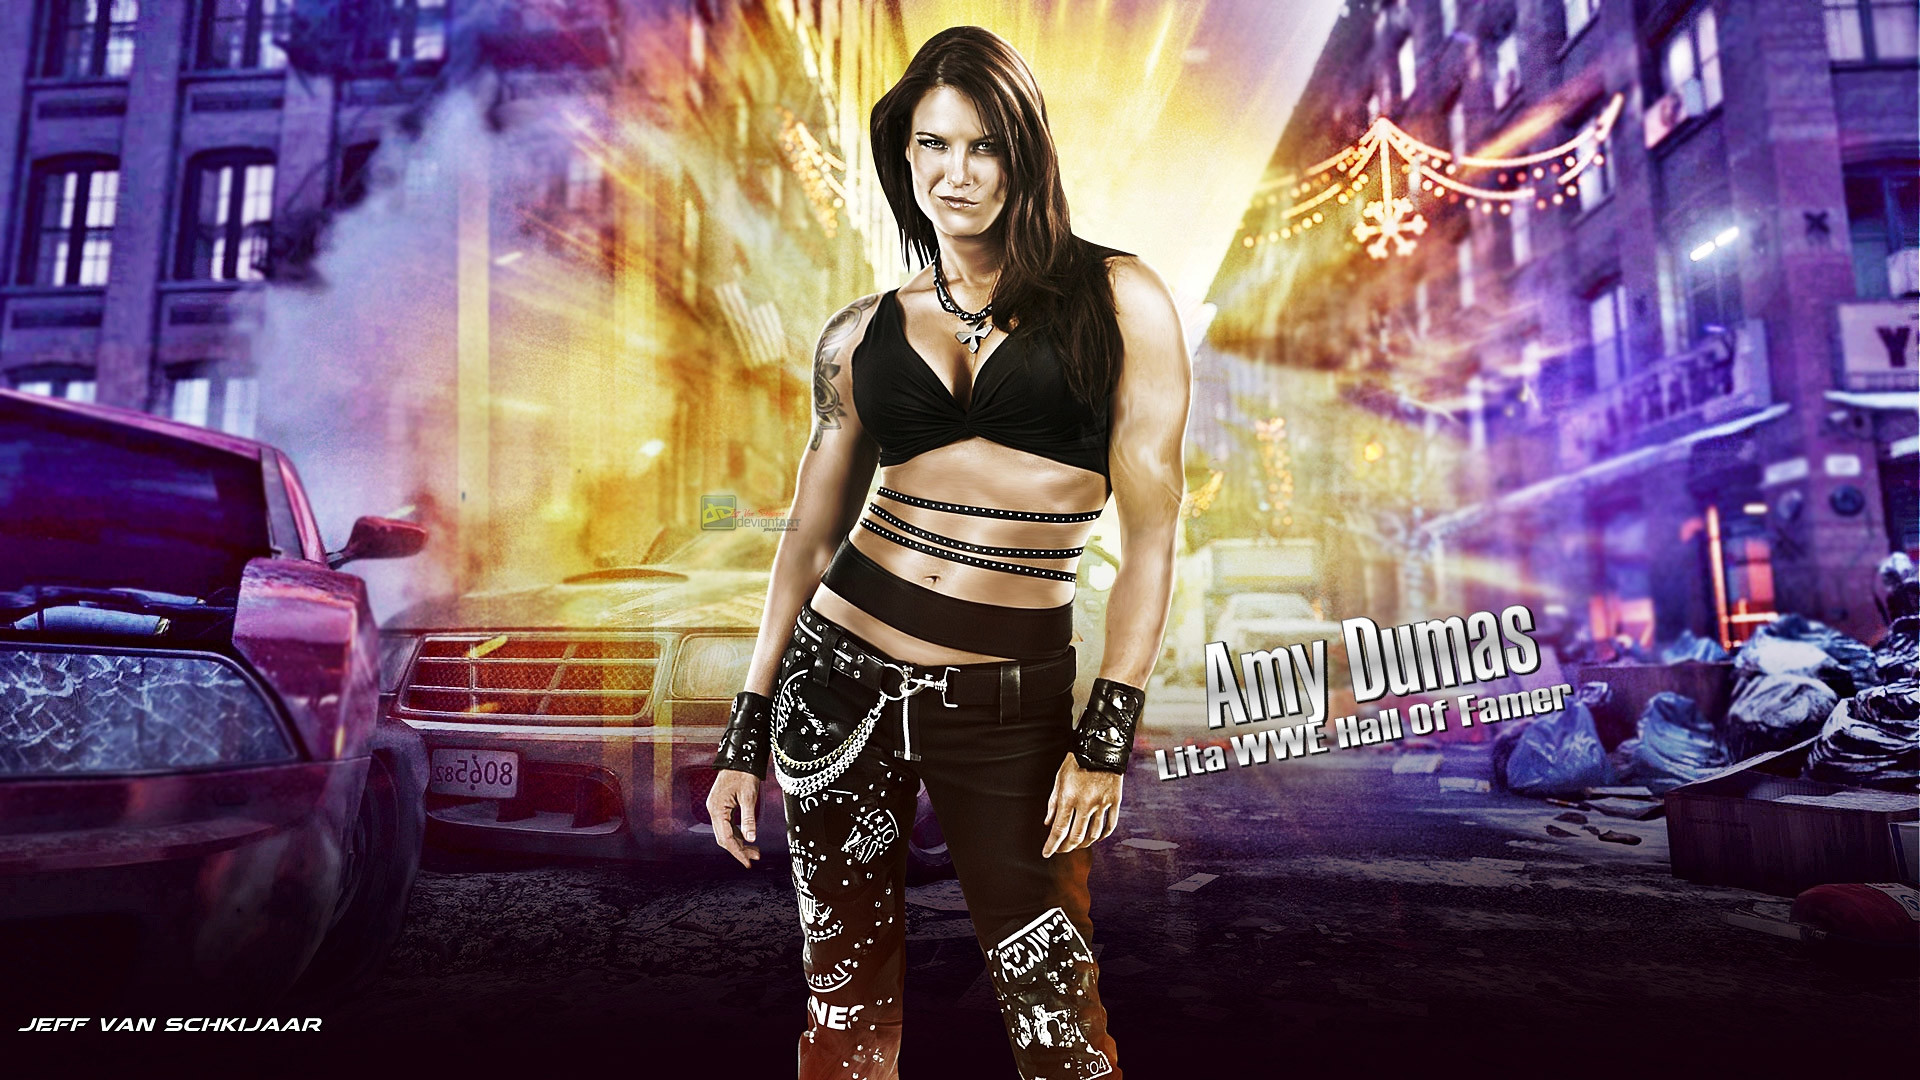 Wwe nxt wallpapers 74 images - Wwe wallpaper ...